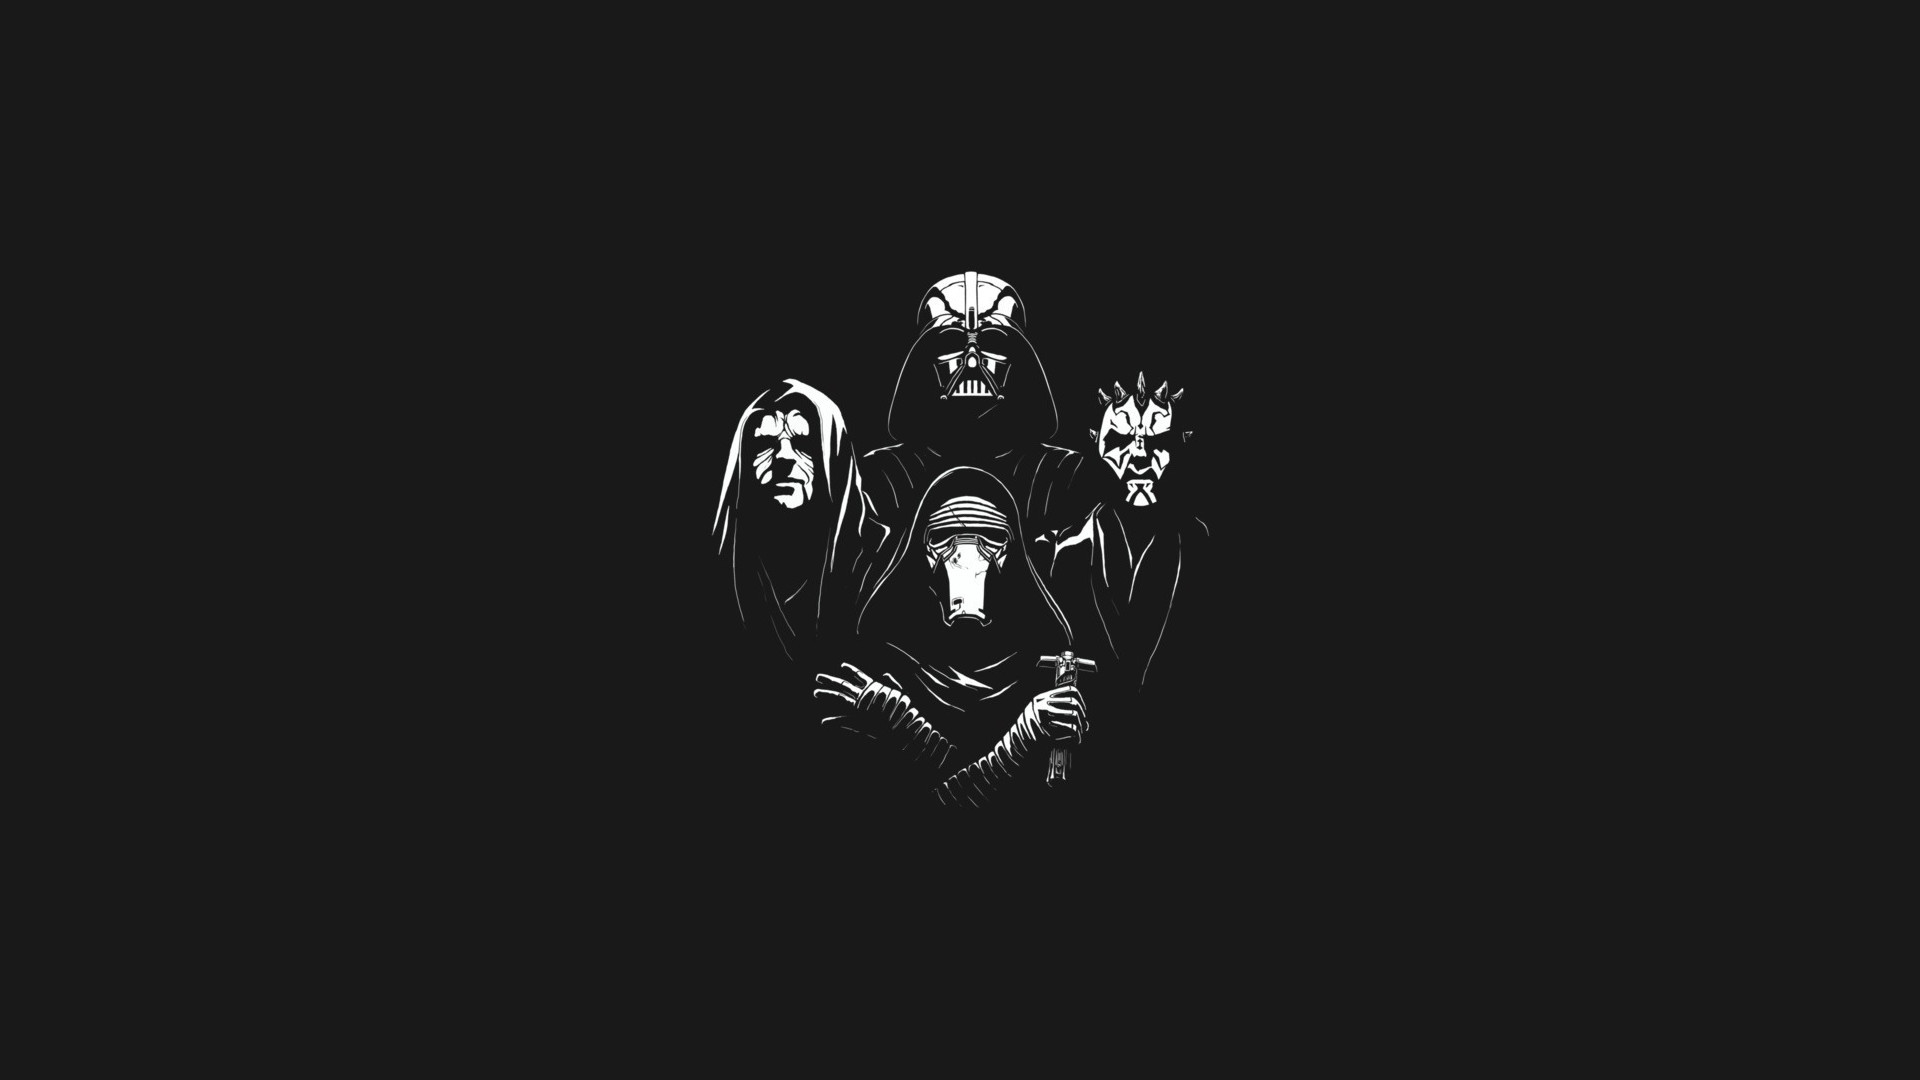 Star Wars Dark Side Wallpaper (70+ images)